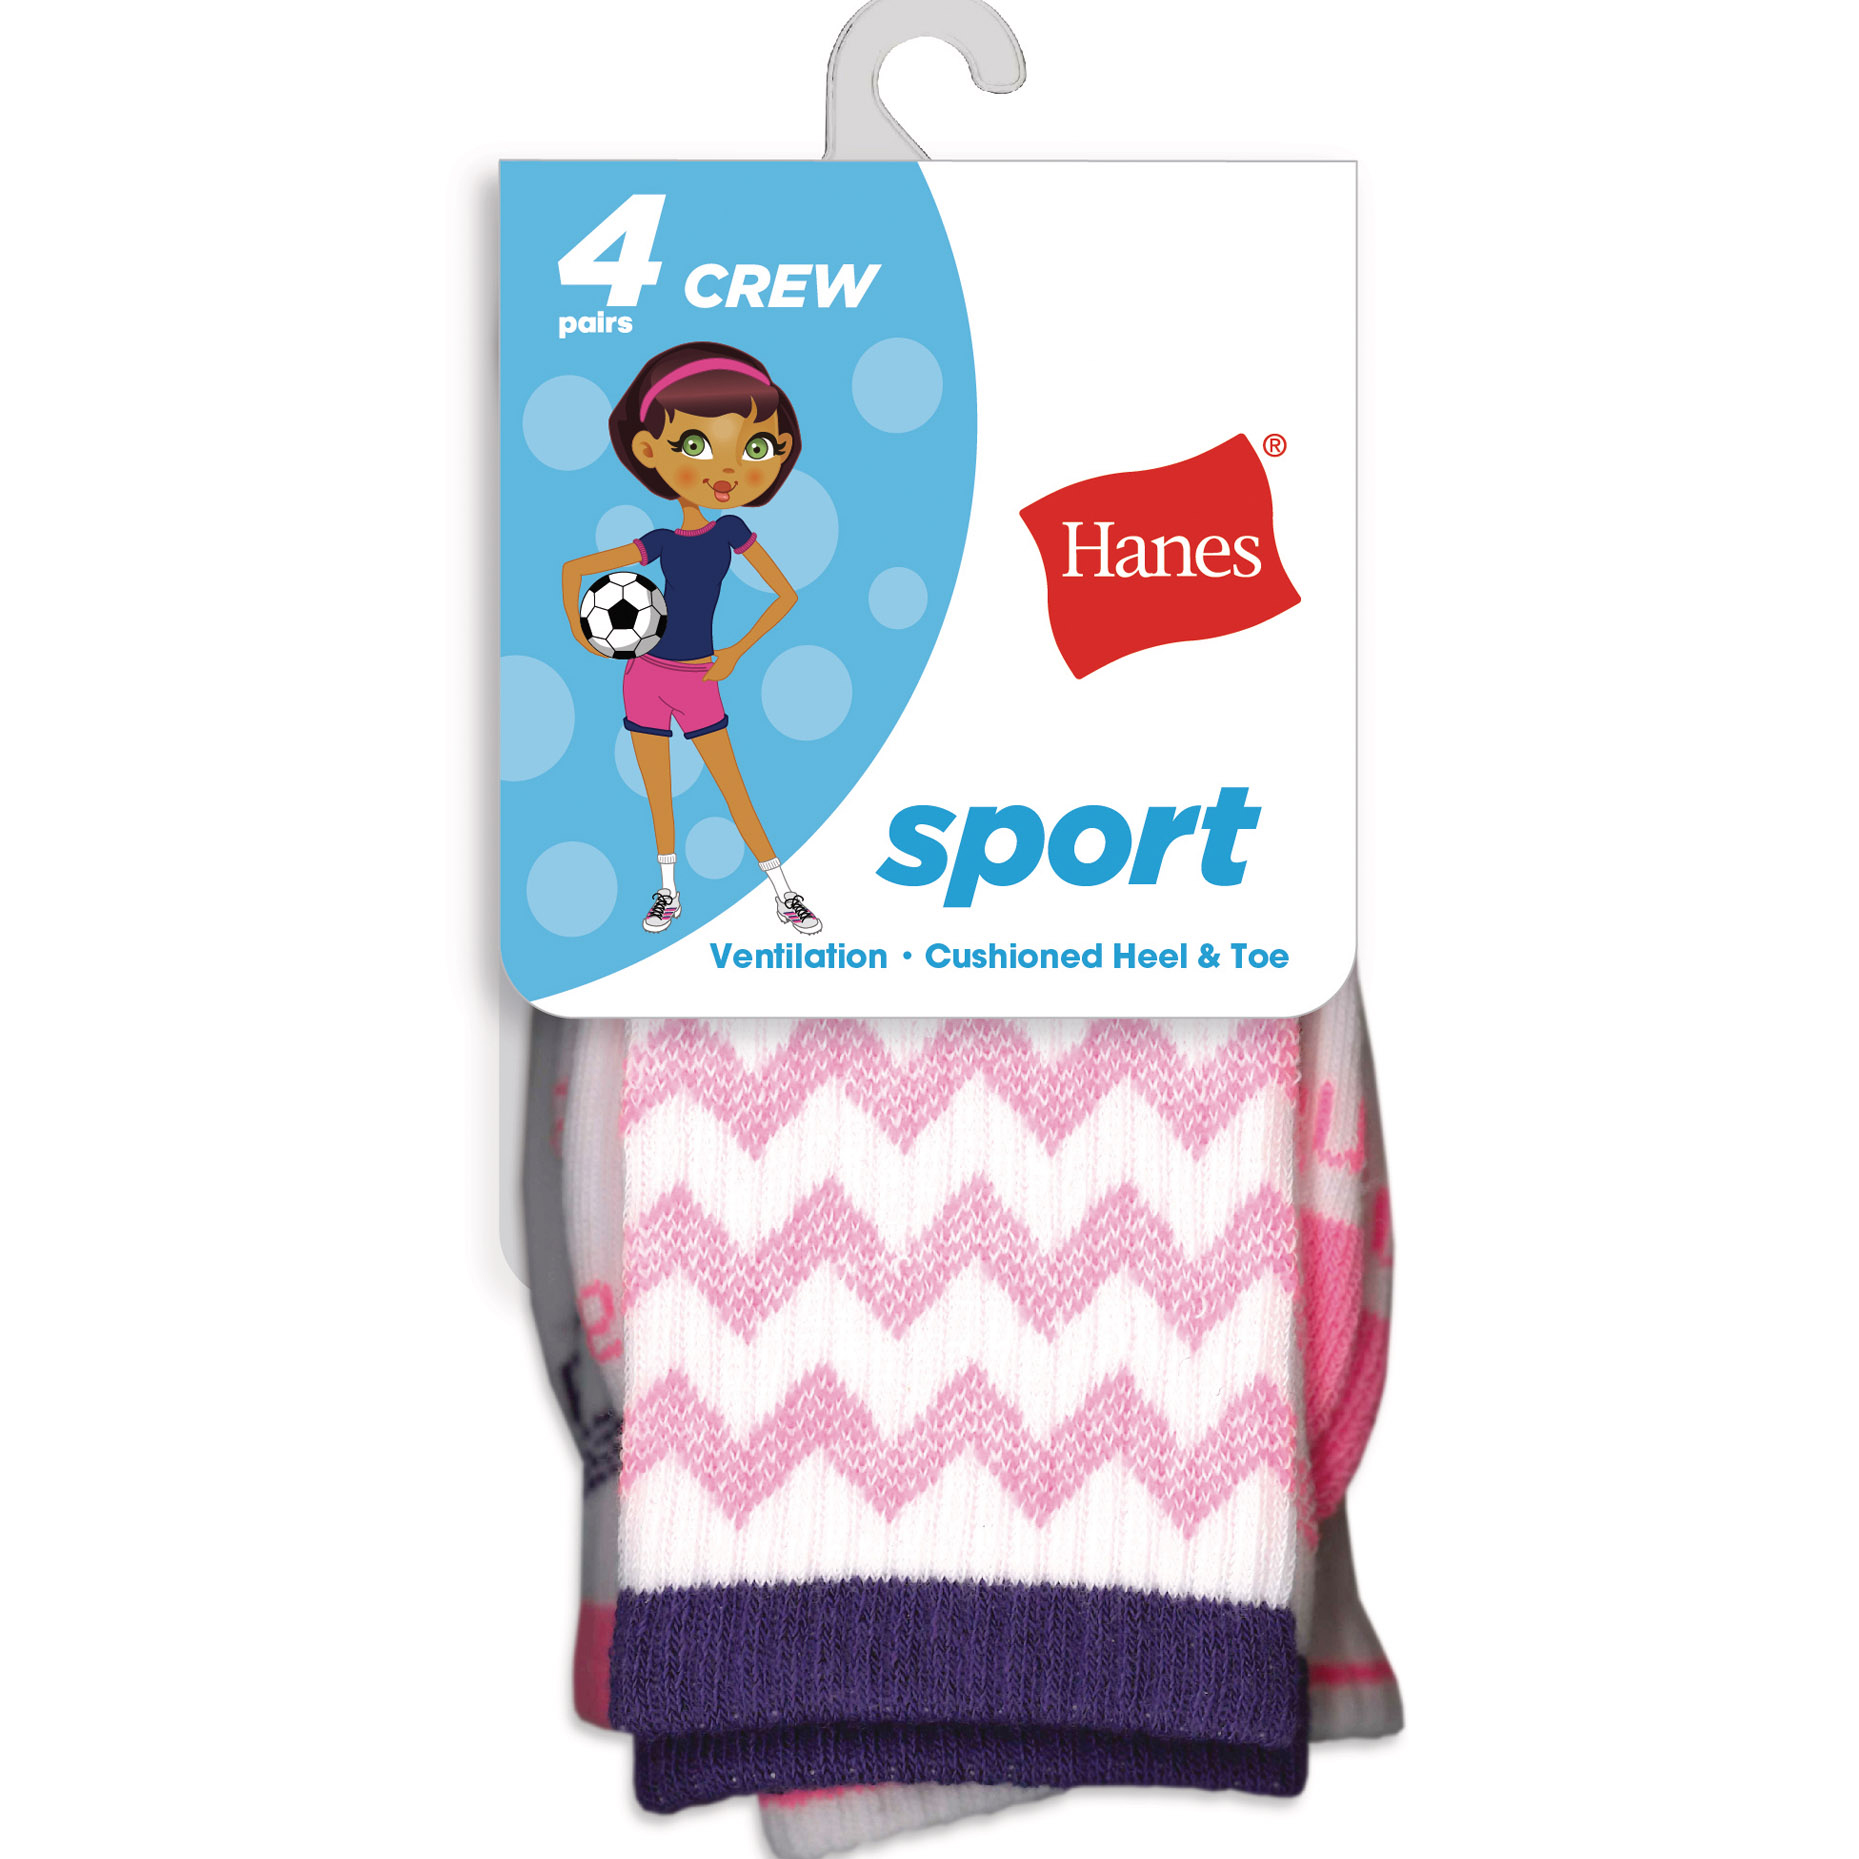 Hanes Girls' Sport Crew Socks, 4 Pack